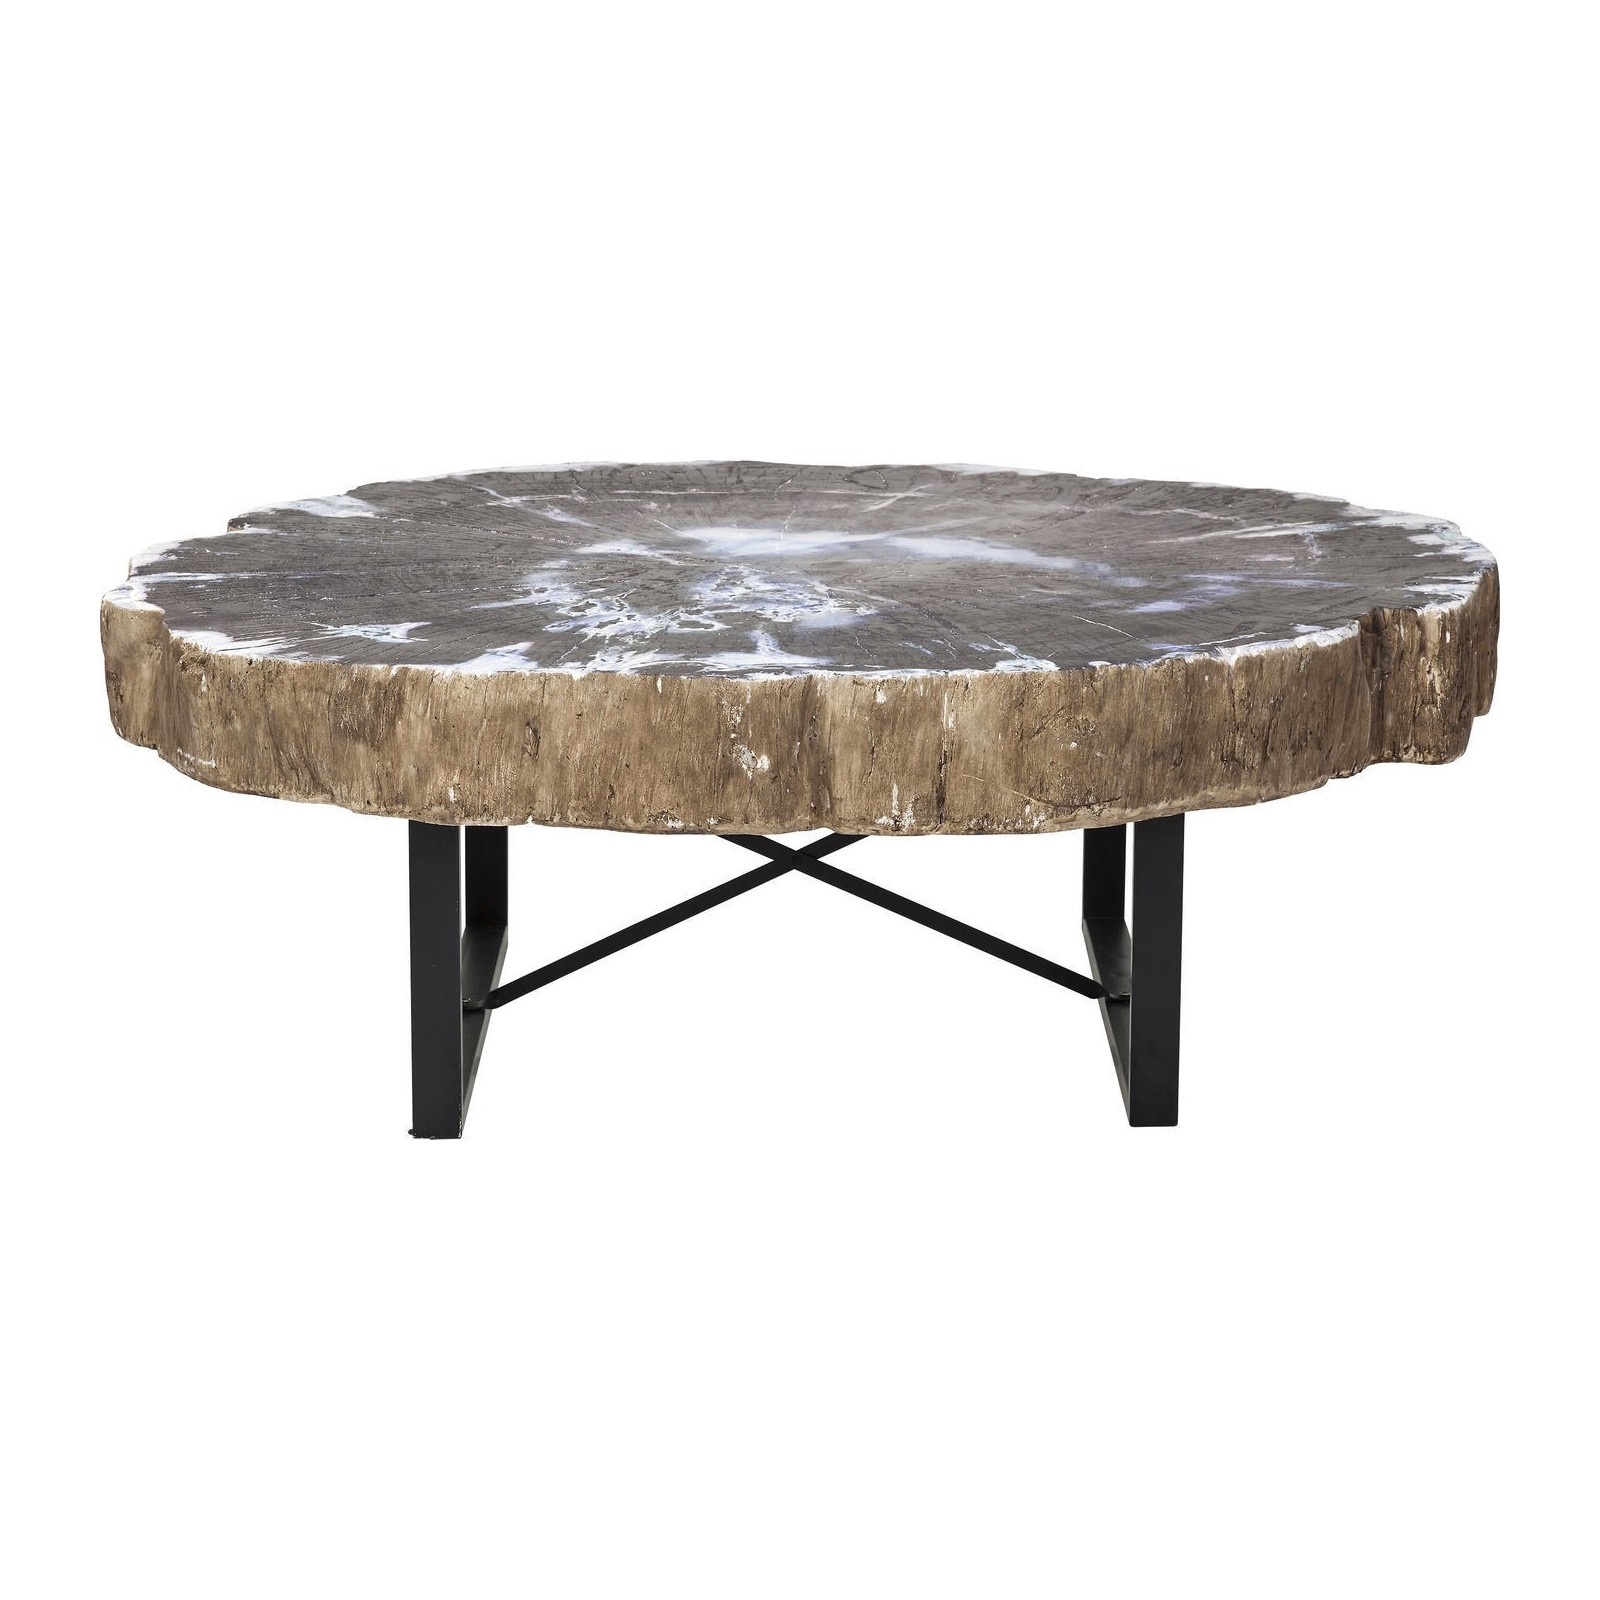 Table basse design ronde tronco meubles d co kare - Table kare design ...